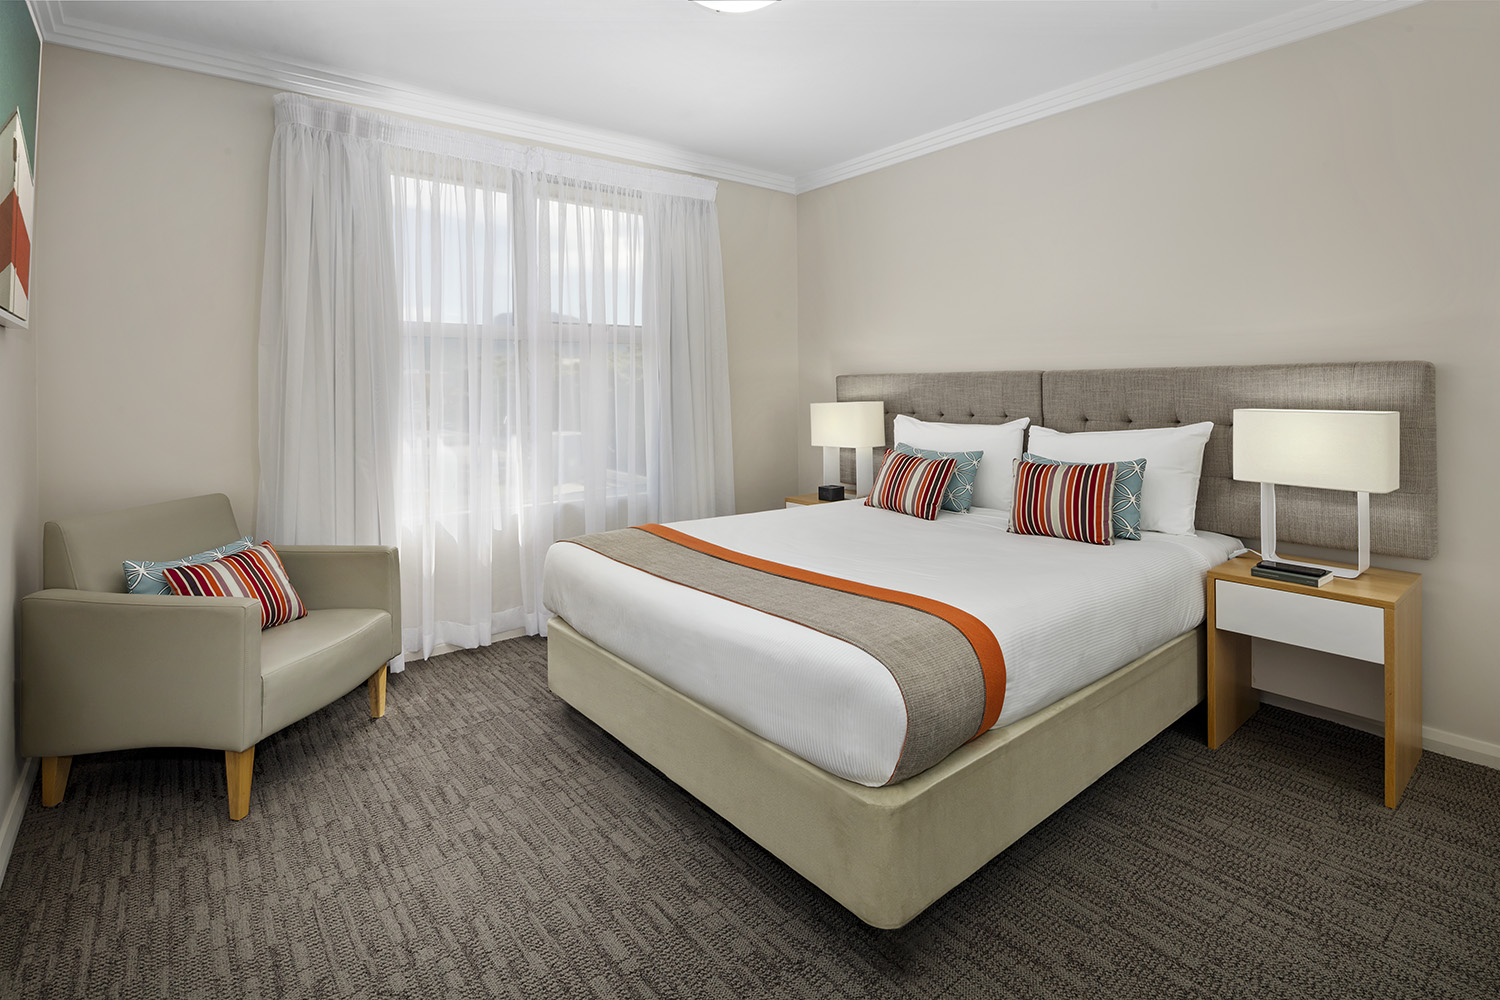 Wollongong Serviced Apartments Wollongong Accommodation Quest Wollongong Apartment Hotel